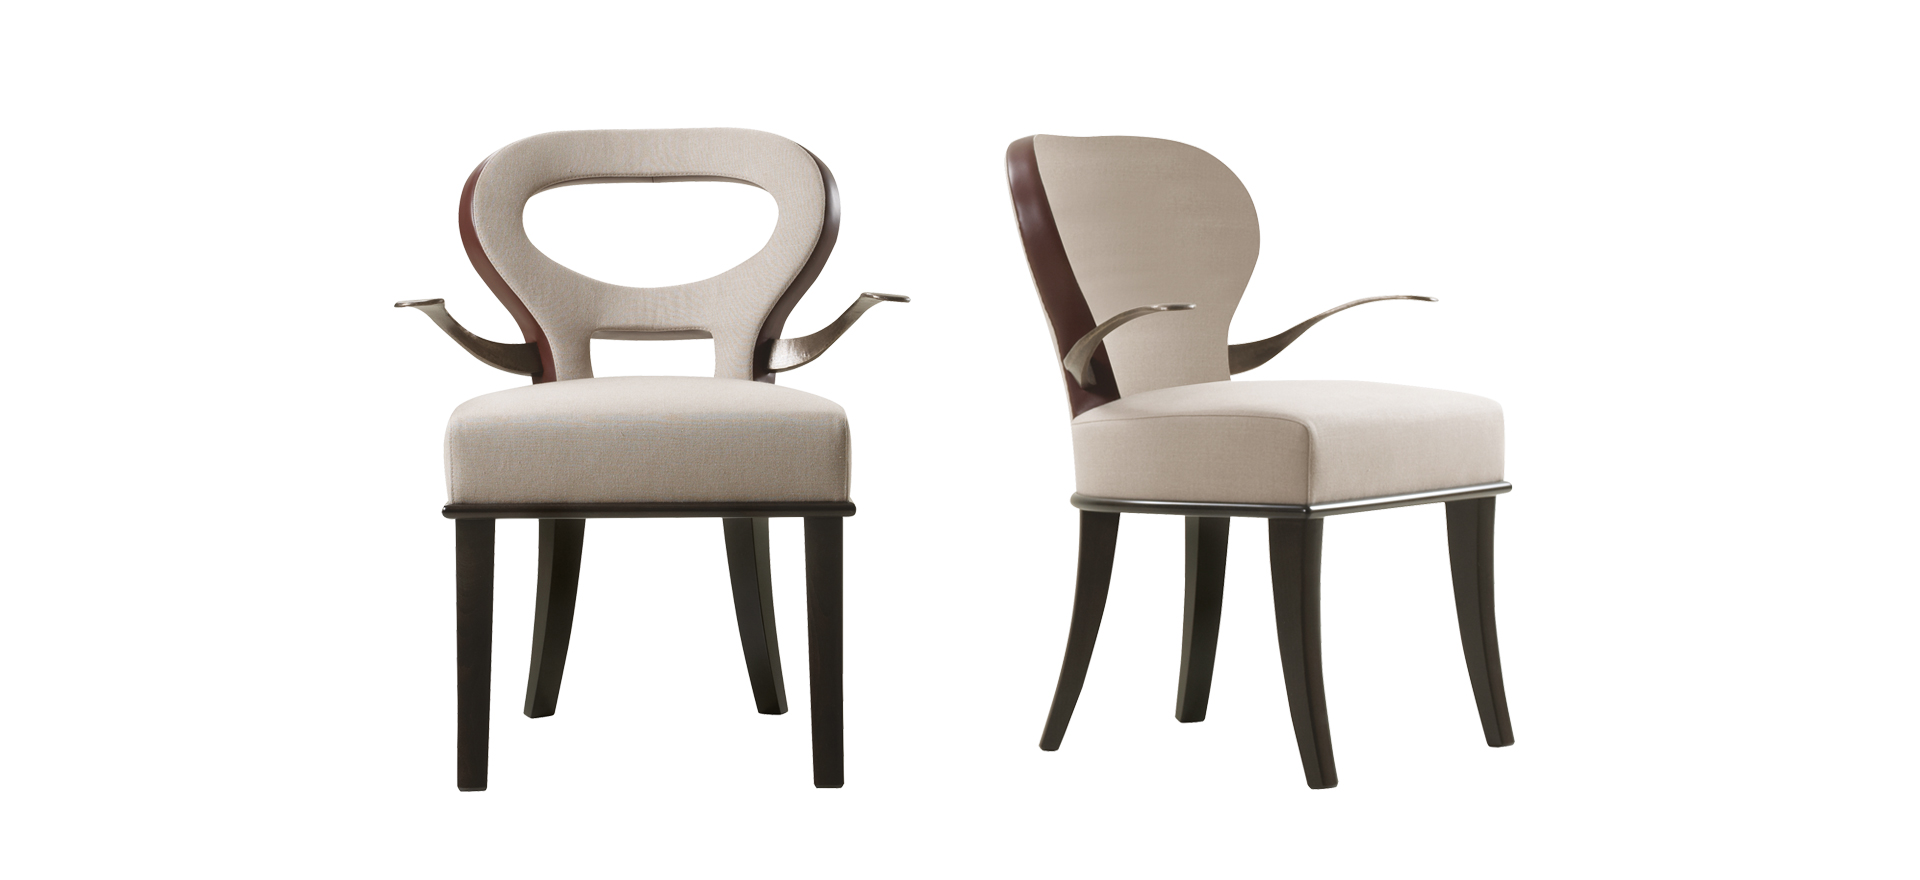 Moka e Roka are two wooden chairs covered in fabric and leather, with or without bronze armrests, from Promemoria's catalogue | Promemoria